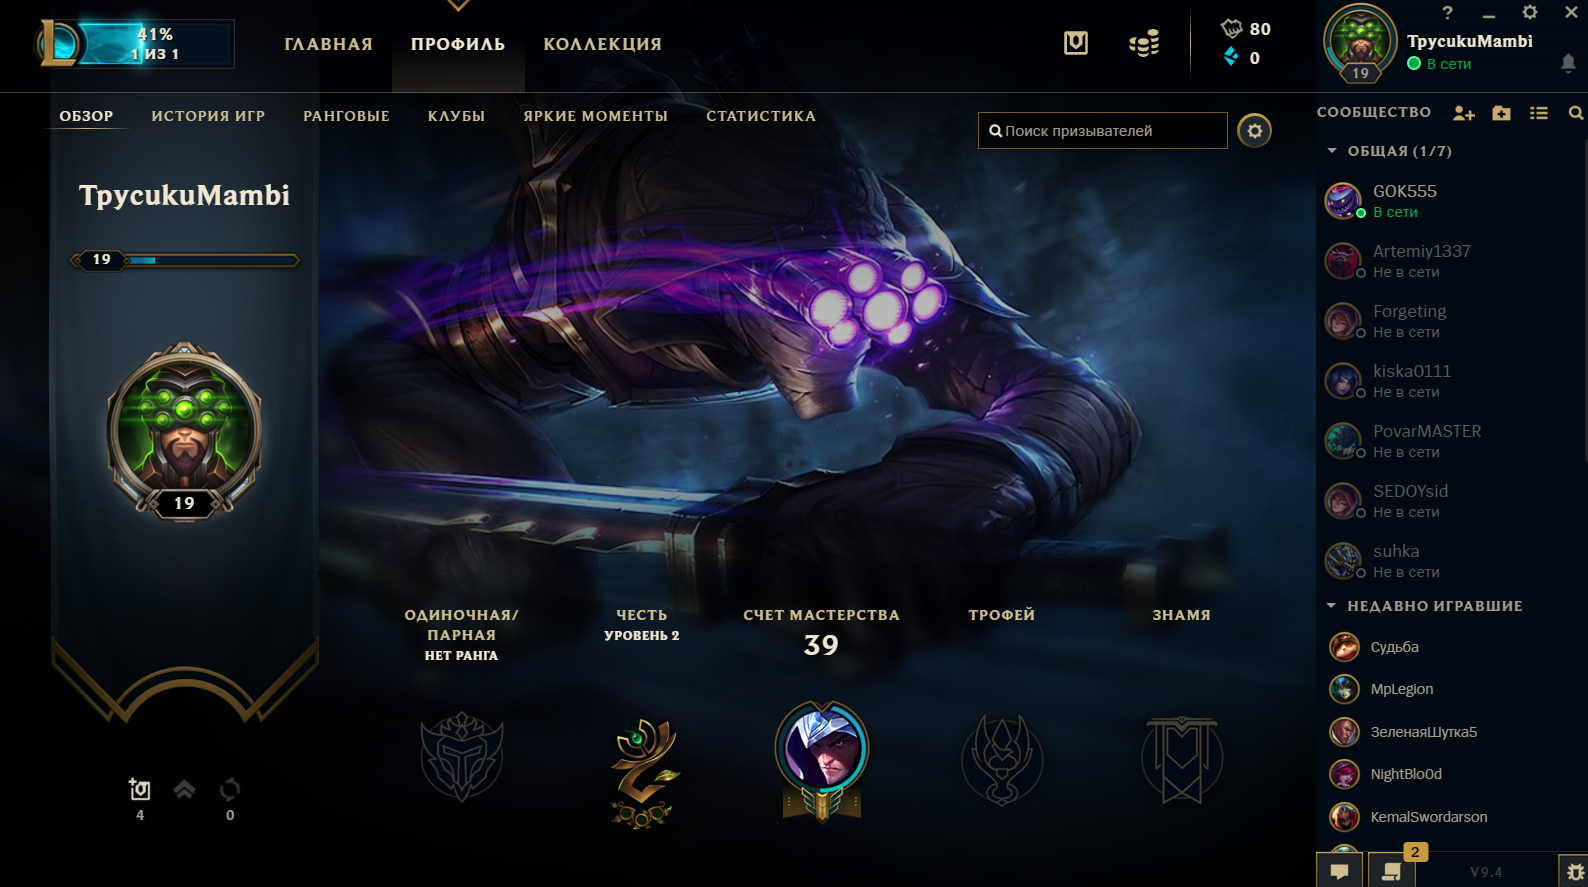 League of Legends - 19 Level account (RU)